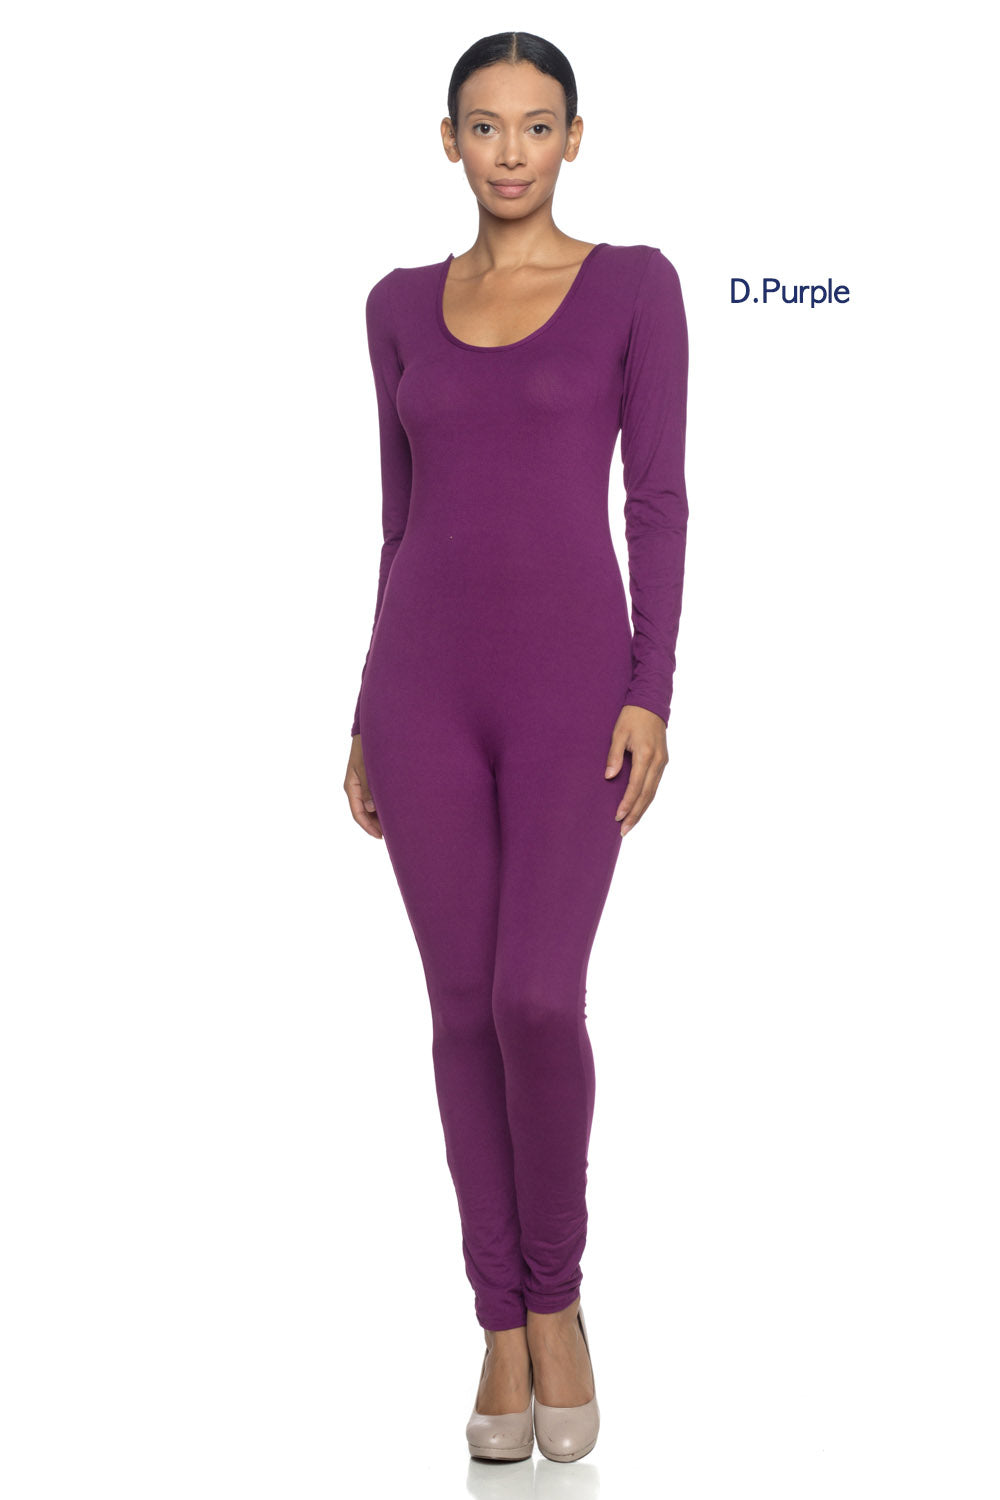 Jumpsuit - BP2035 - Capella Apparel